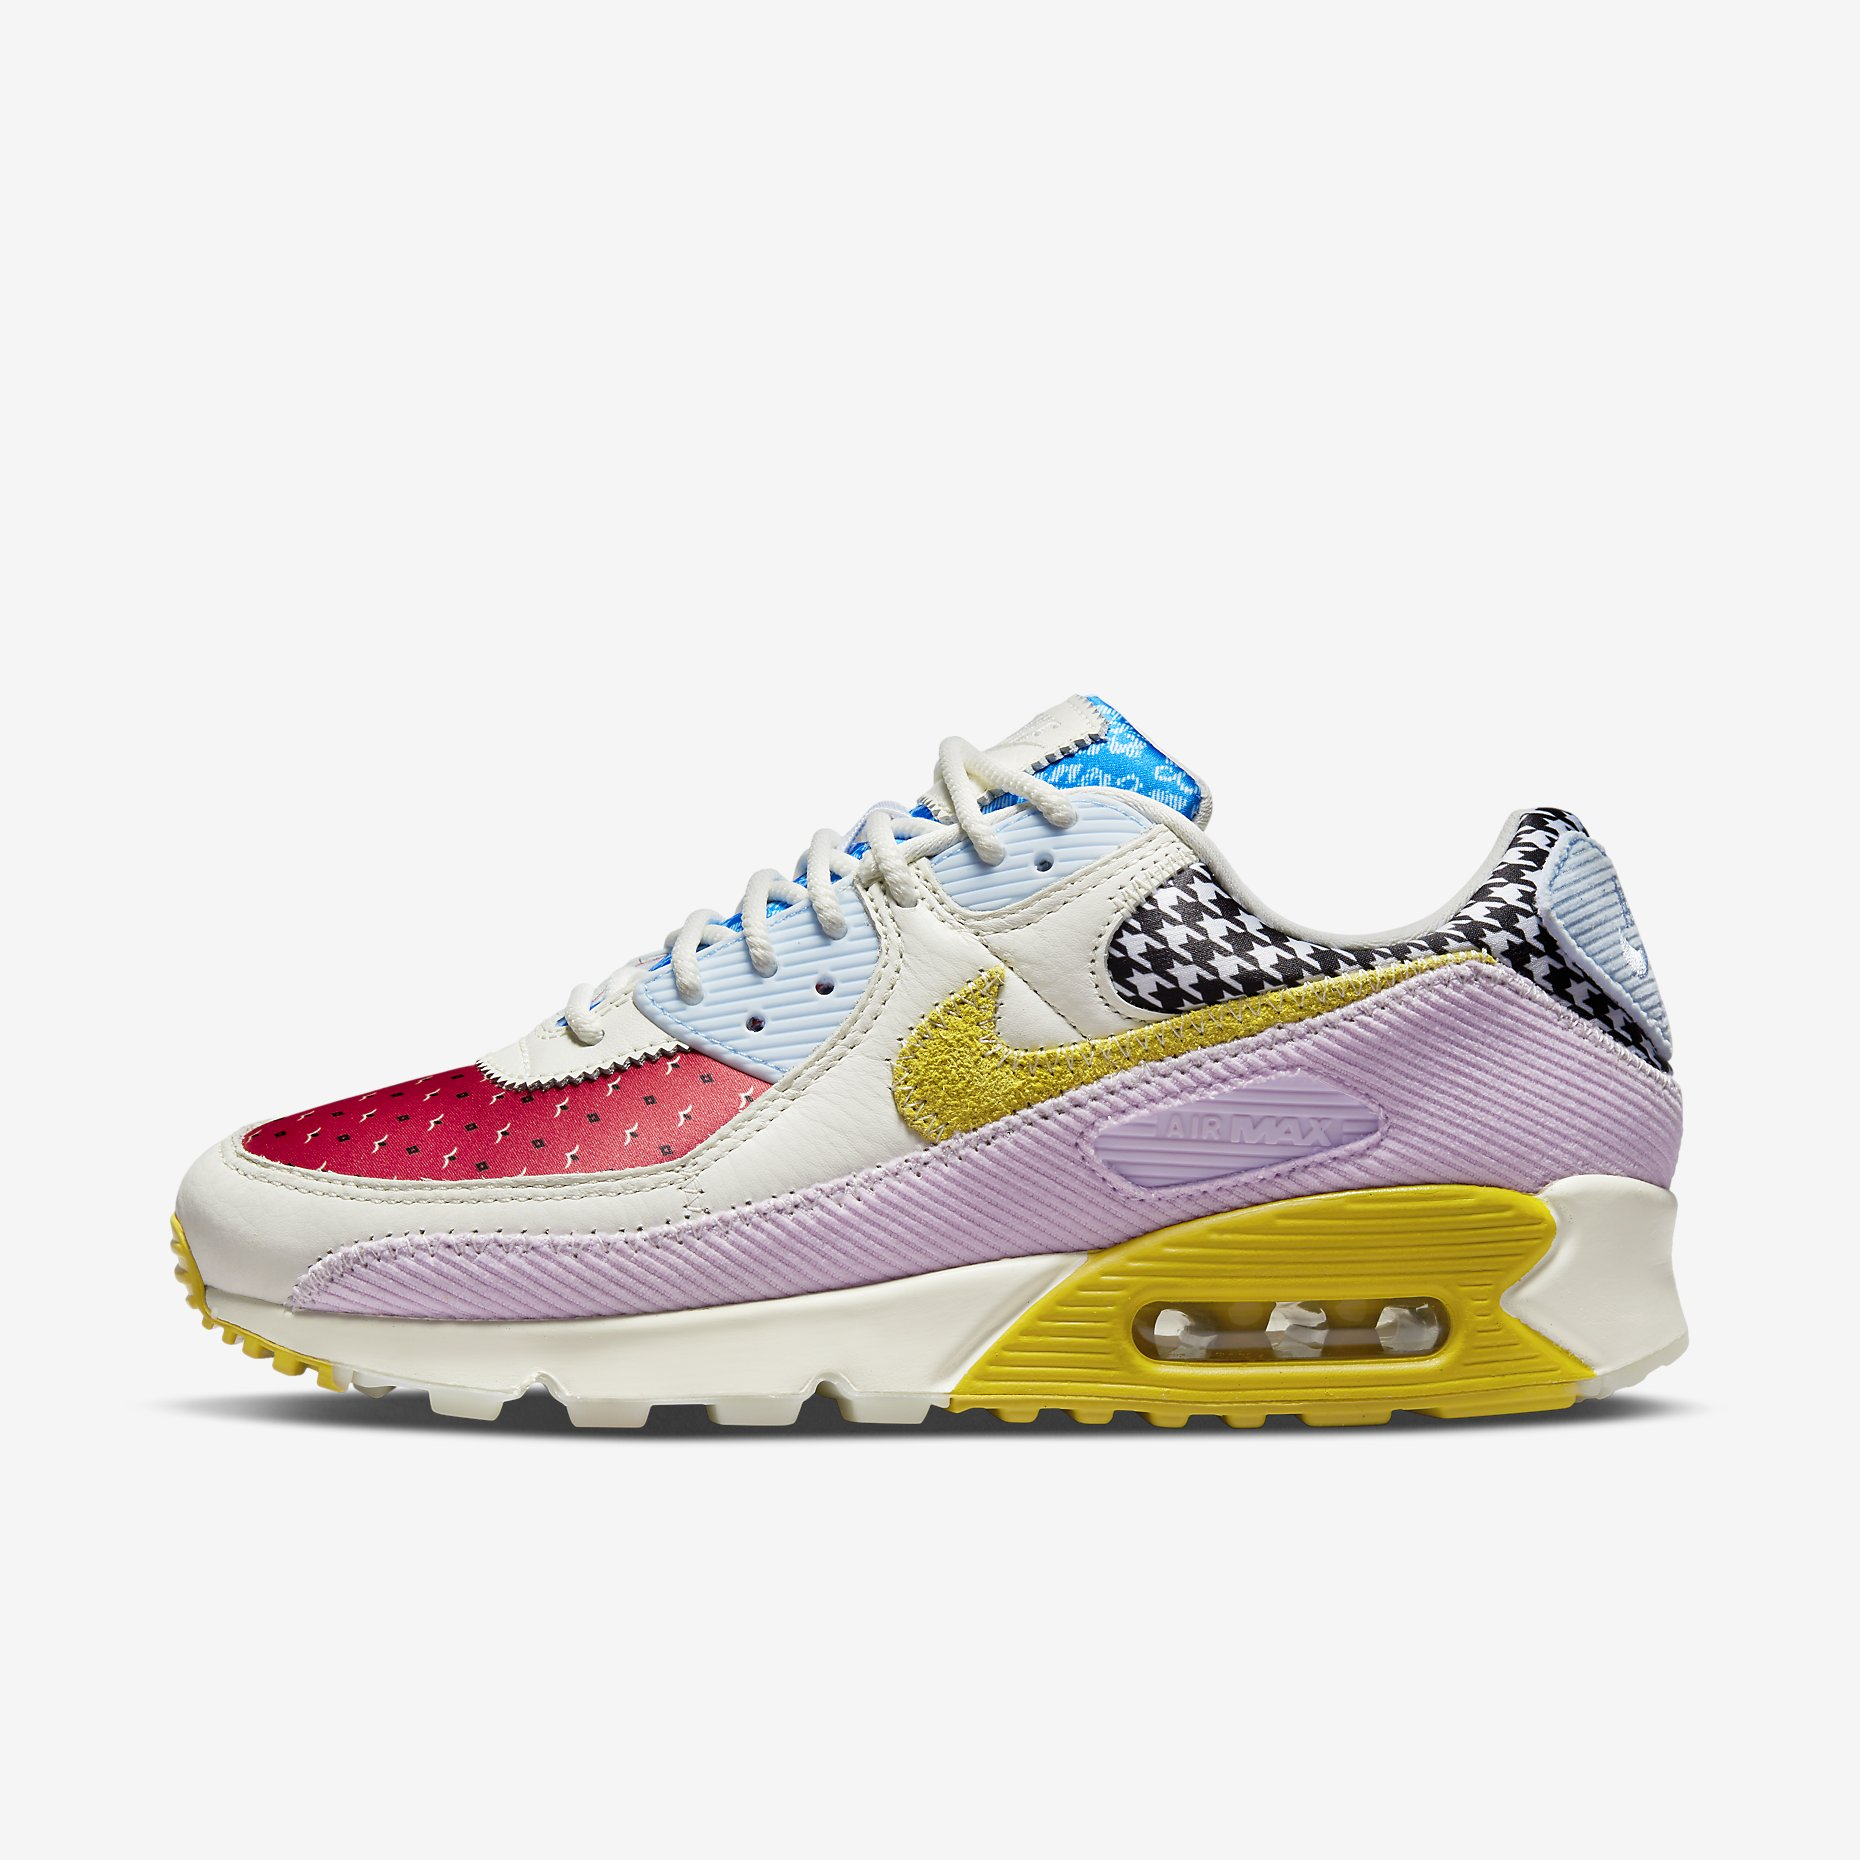 Women's Nike Air Max 90 'Patchwork'